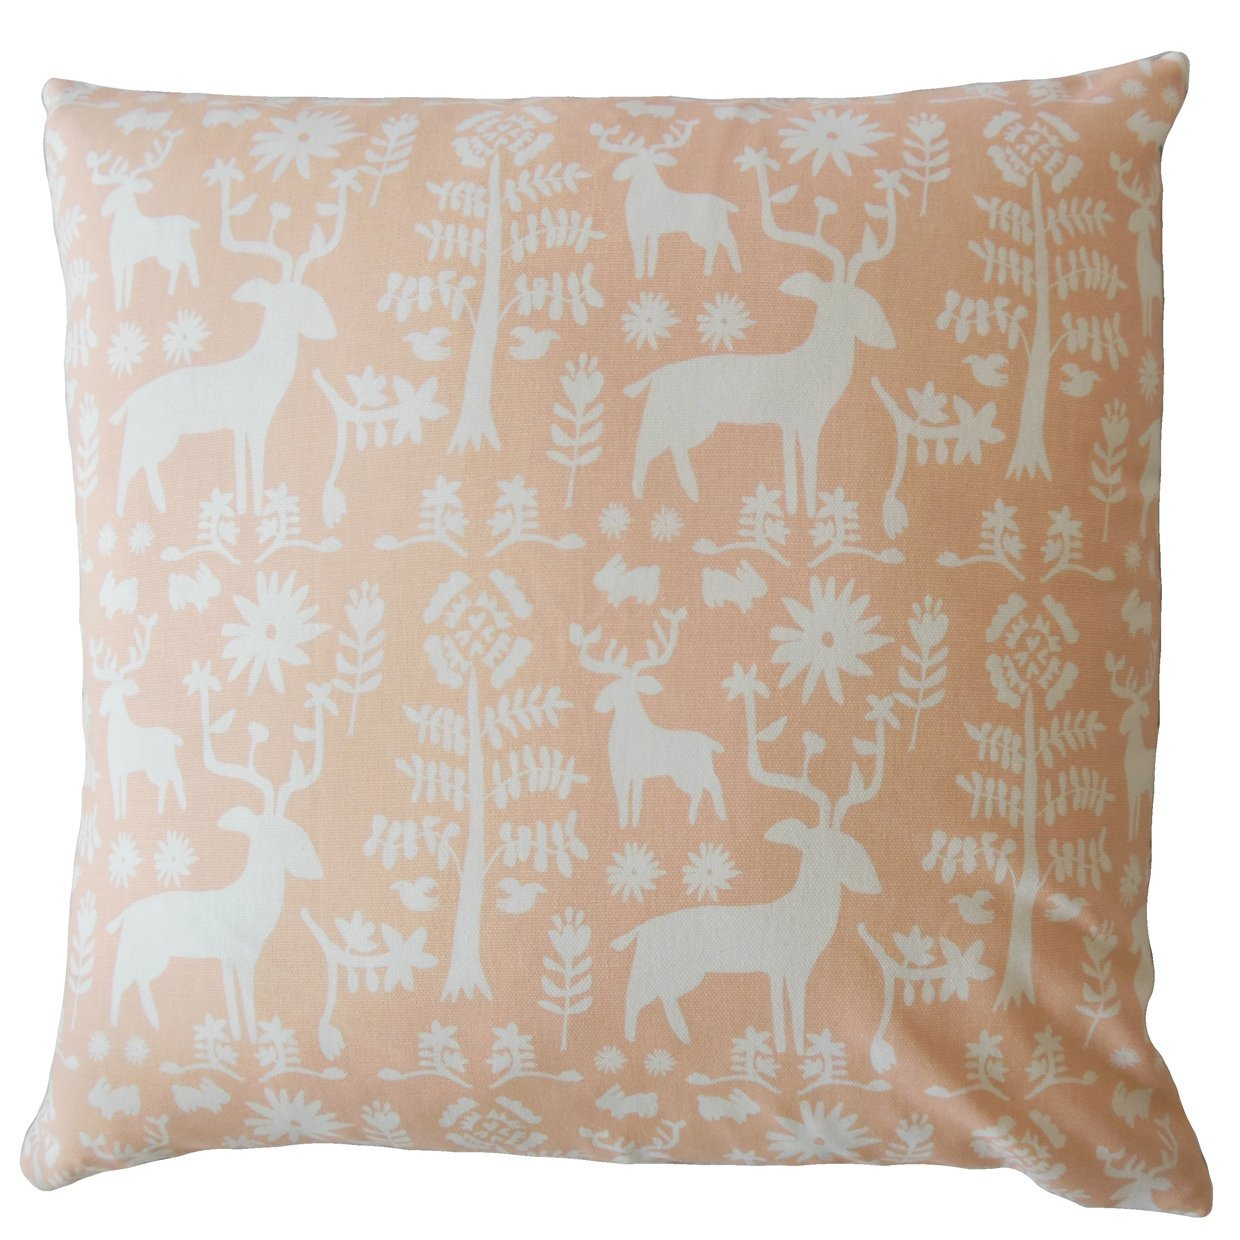 Harrison Throw Pillow Cover